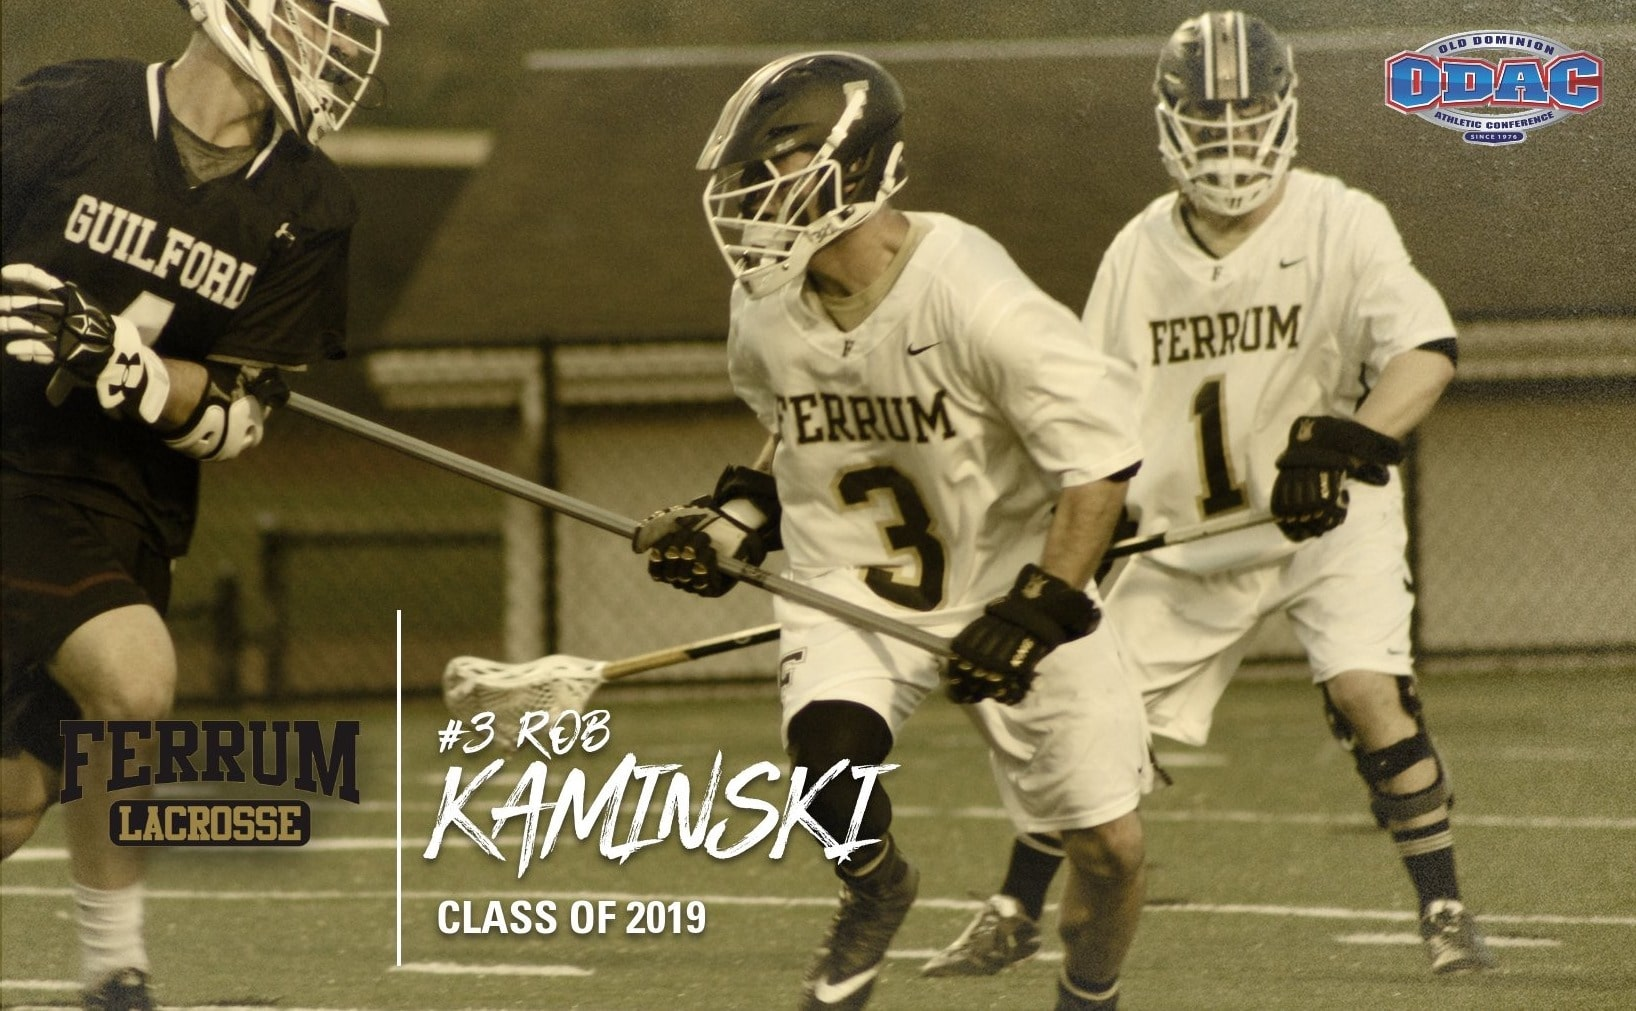 Rob Kaminski '19 has been accepted into a master's program and lacrosse program at Leeds Beckett University.